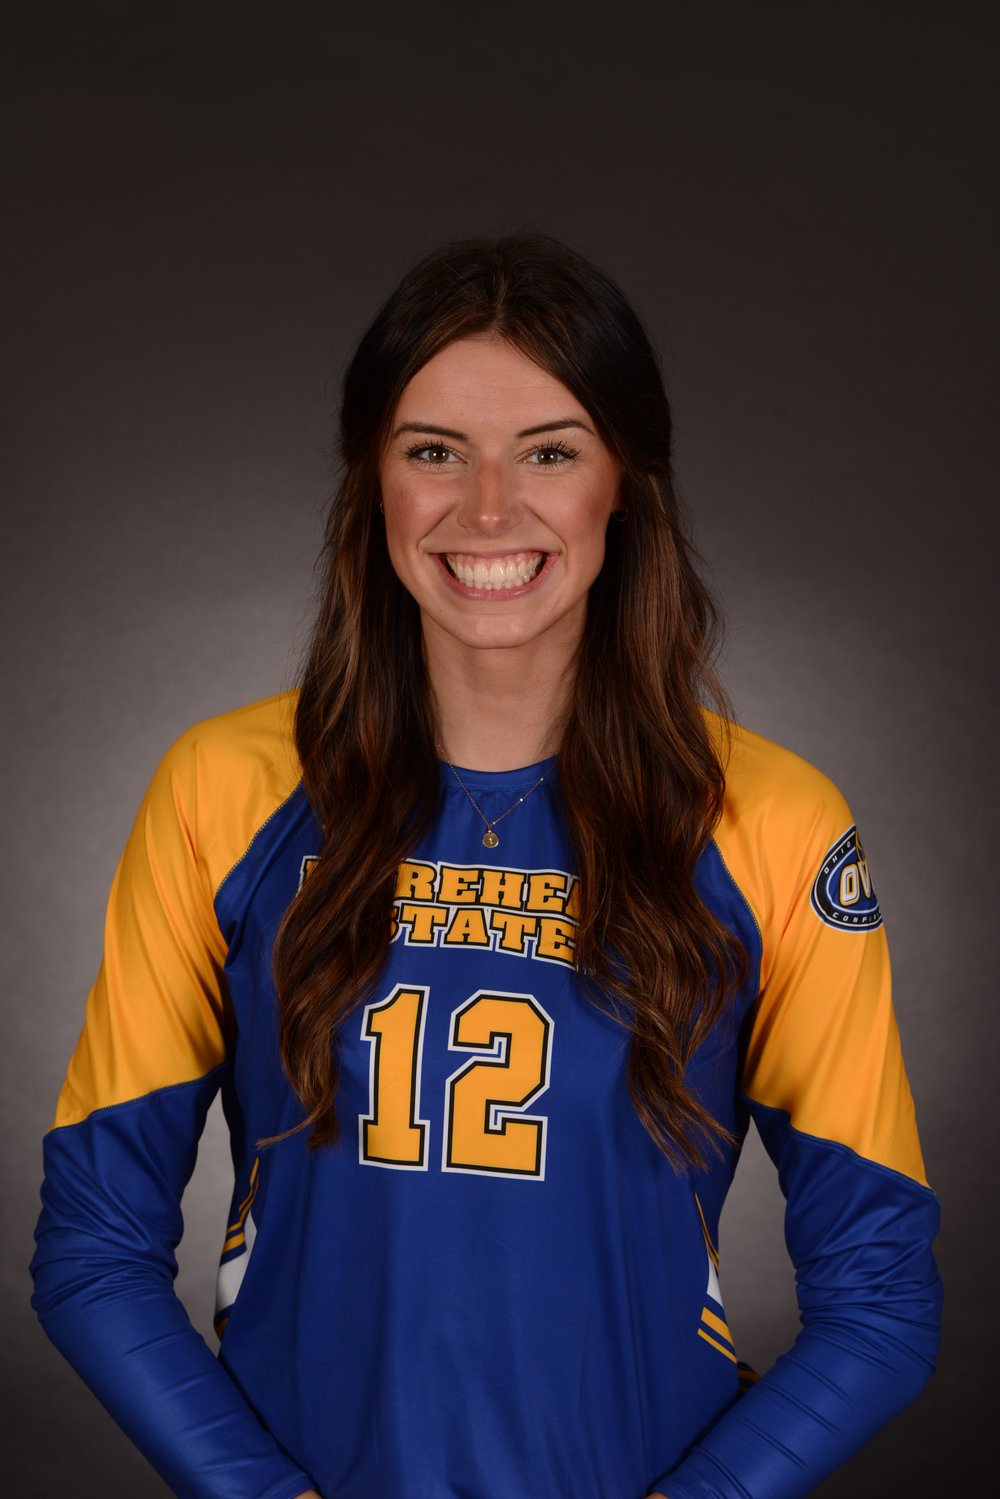 Jessie Wachtman - Hey everyone, I'm Jessie! I played indoor and beach volleyball at Morehead State University from 2014-2019. I graduated from Morehead State with two degrees, one in Strategic Communication and another in Social Work. My hope is to use the gift God has given me to love people fully and deeply in whatever I pursue. Aside from sports, there are a couple things that I love: bubble tea, Justin Timberlake, and anything burnt orange. I'm a 2 with a 3 wing on the Enneagram – big self-awareness girl. If I were stranded somewhere, I would hope it would be a beach or in a mall. Catch me in Columbus, Ohio (go bucks!) or on Instagram @_yessiejessie!